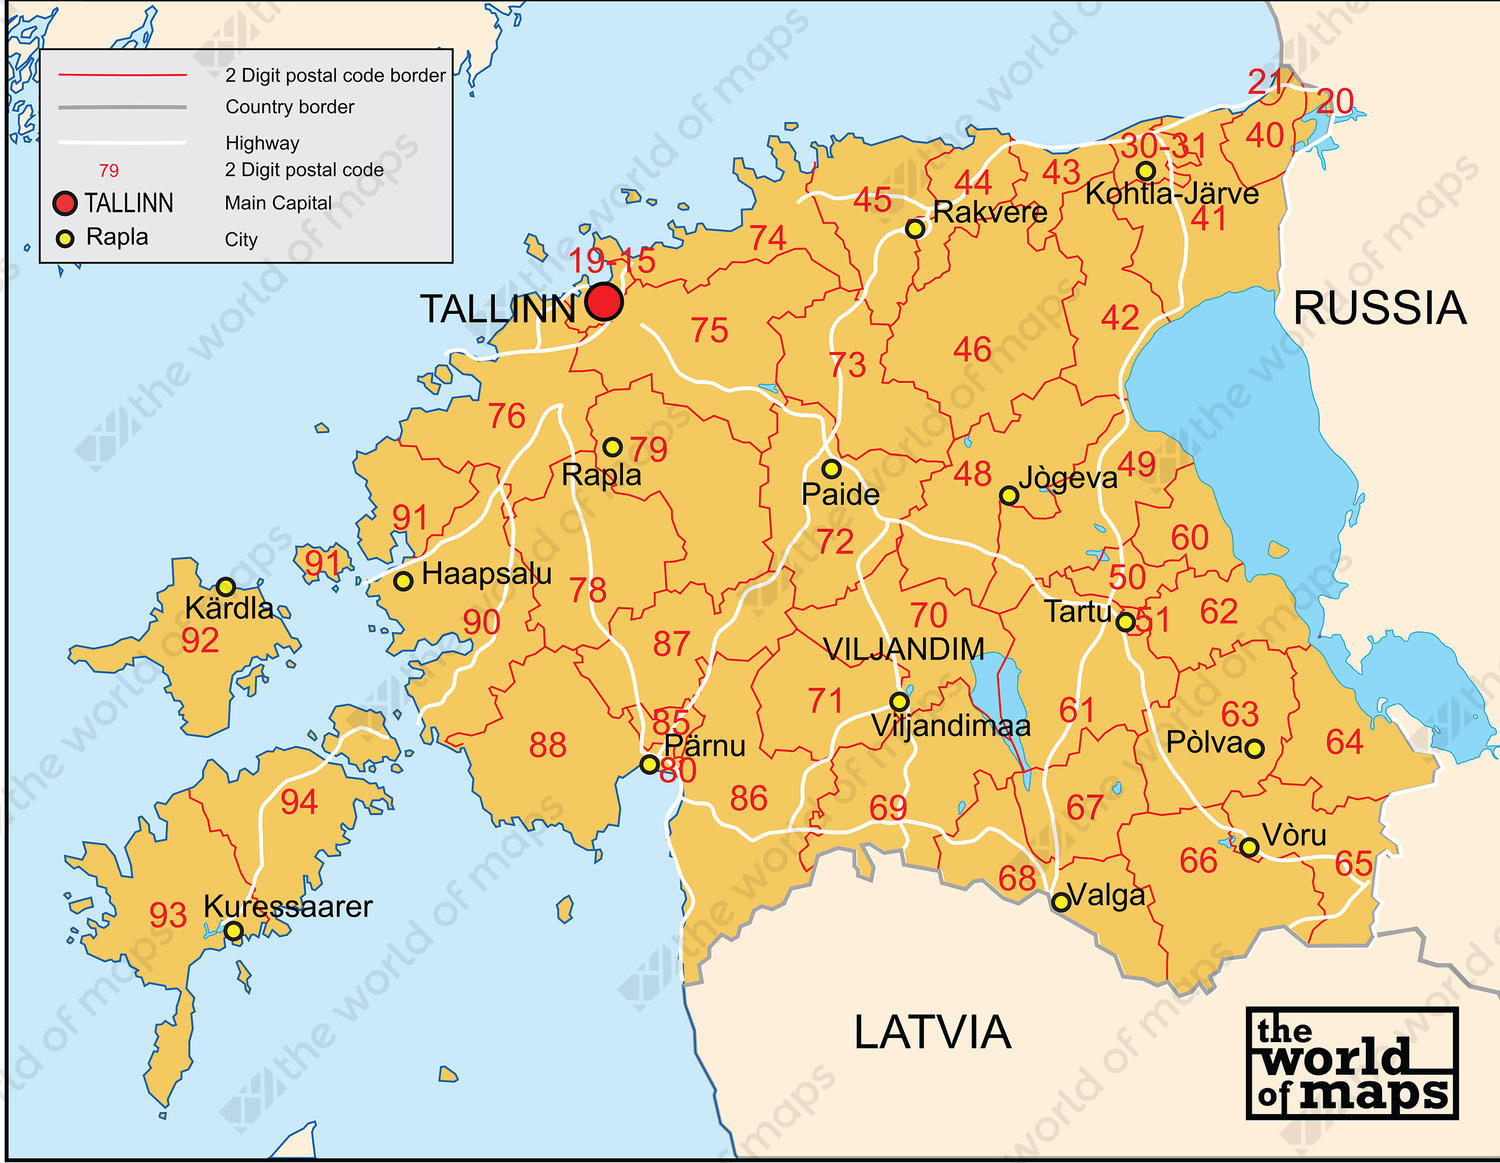 Picture of: Digital Postcode Map Estonia 2 Digit 78 The World Of Maps Com